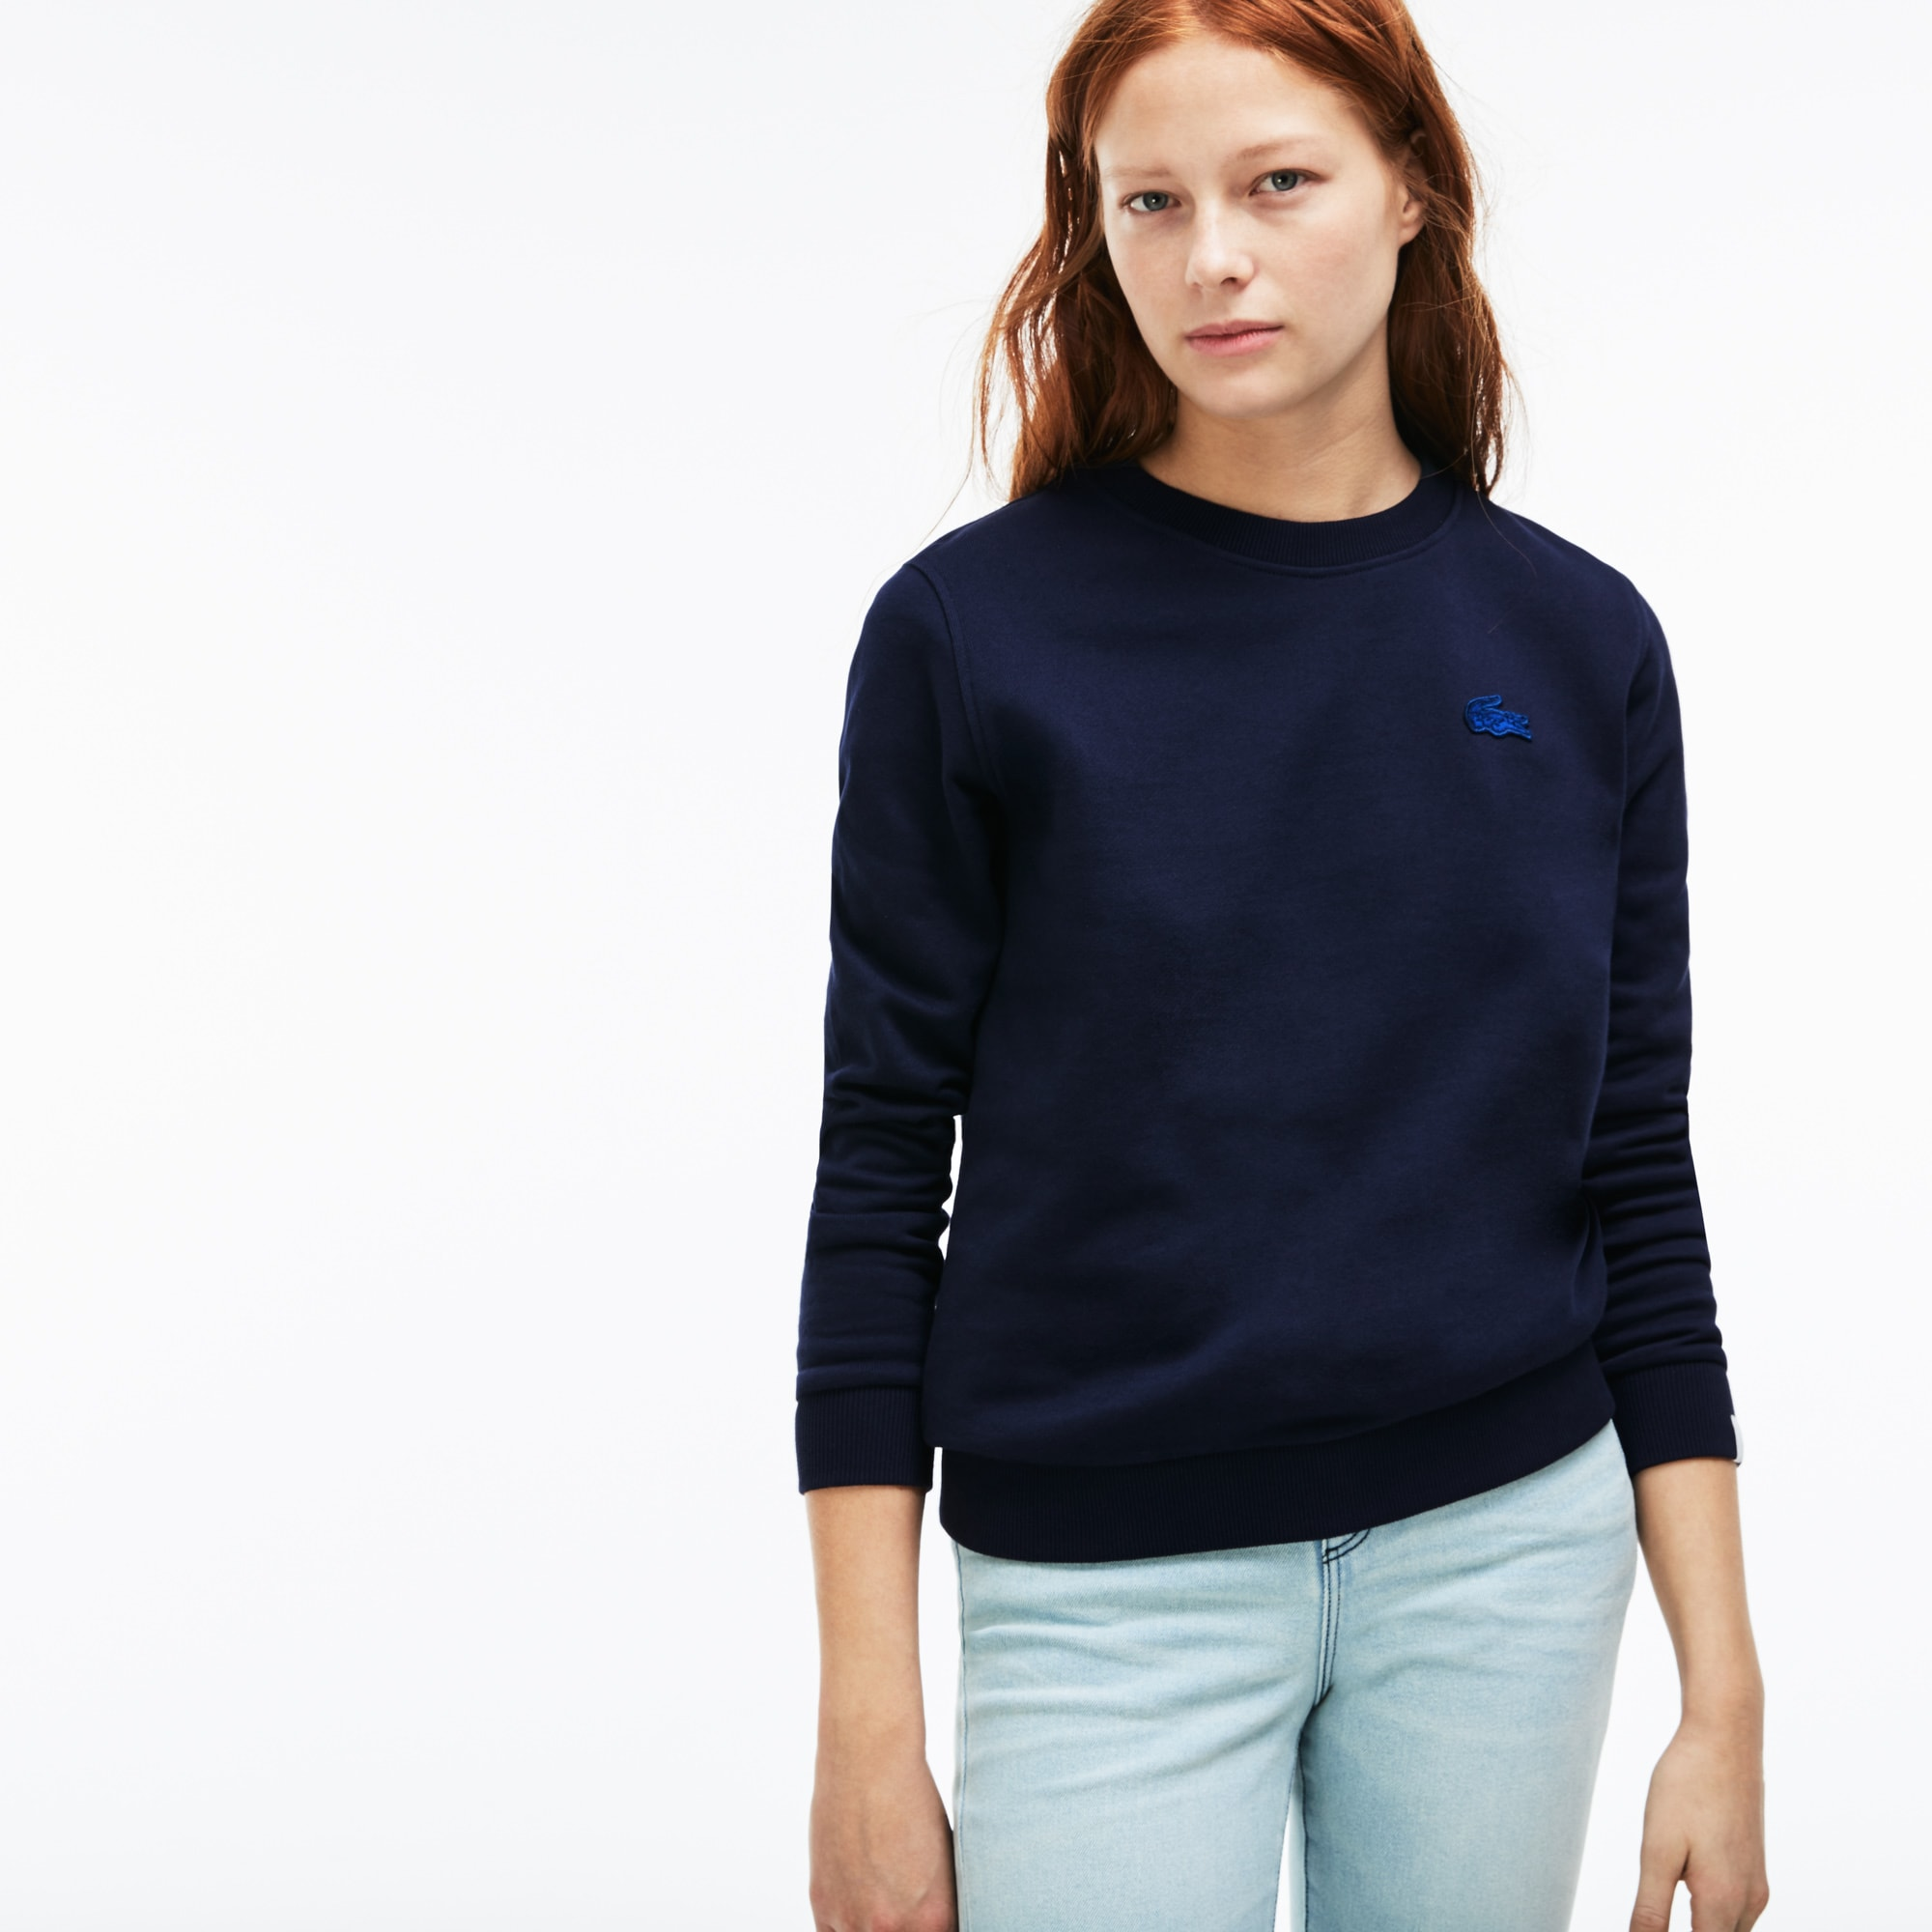 Women's Lacoste LIVE Teardrop Opening Fleece Sweatshirt